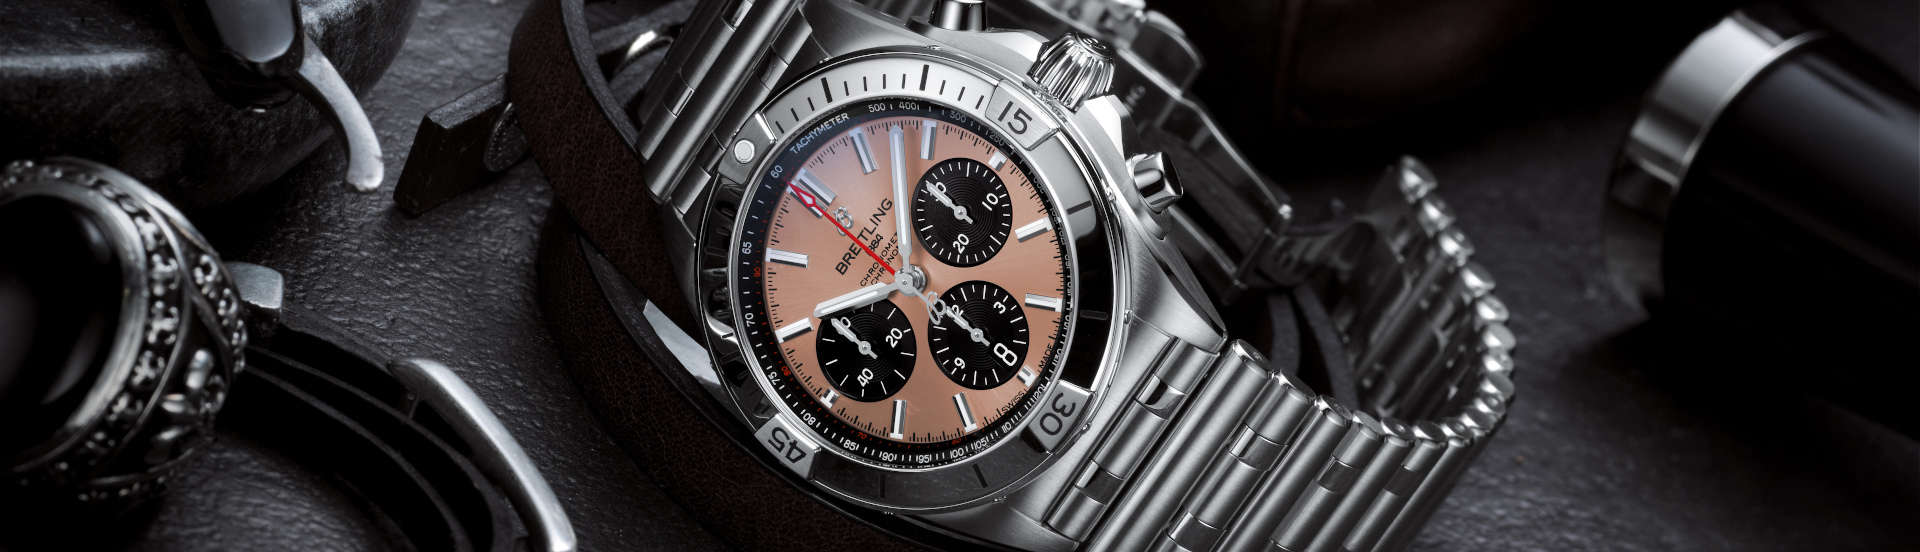 Watch_chronomat-b01-42-with-a-copper-colored-dial-and-black-contrasting-chronograph-counters